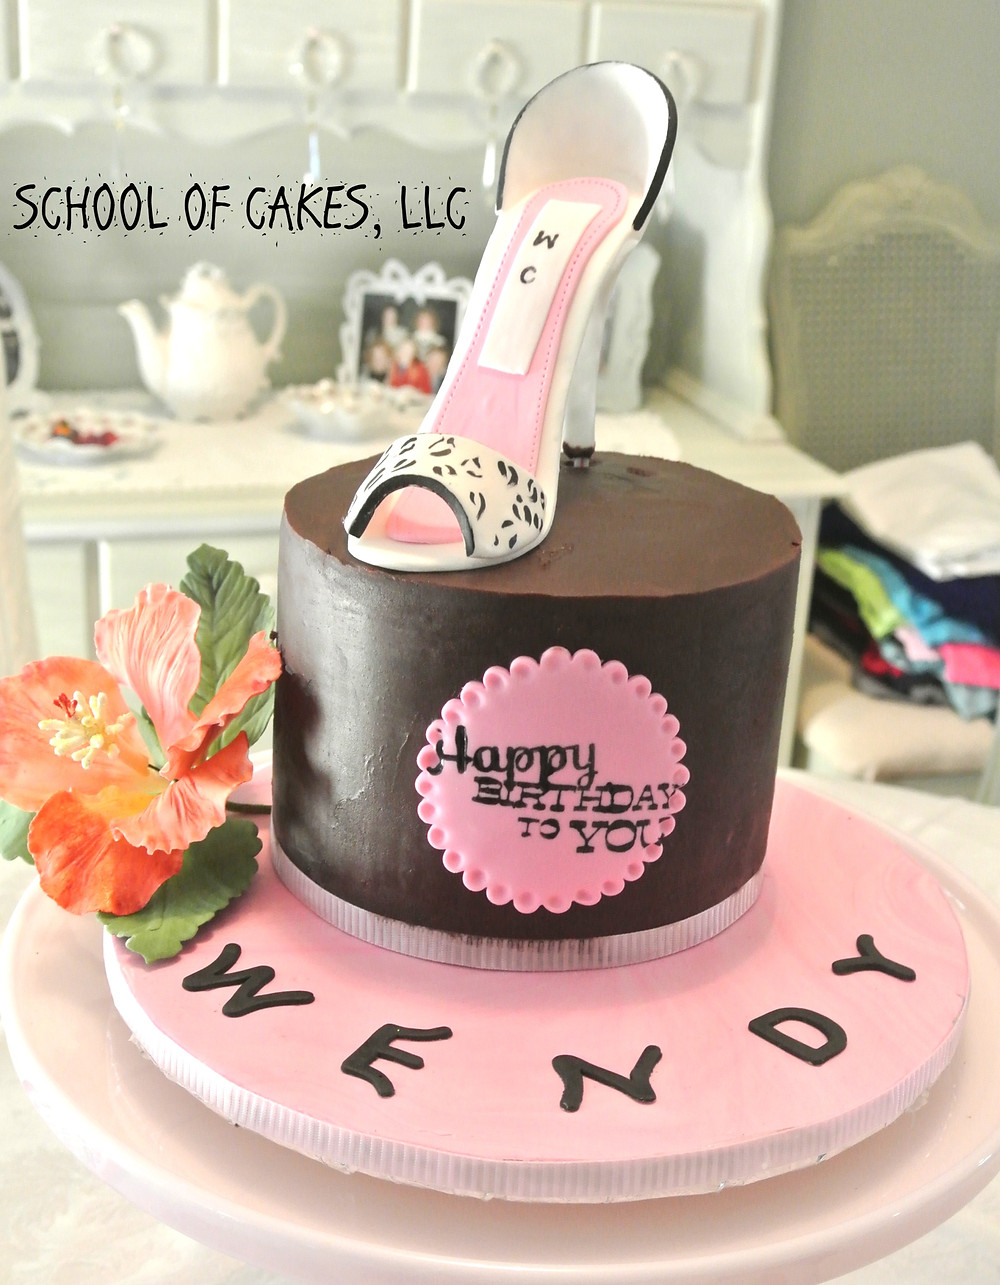 Chocolate Ganache covered cake decorated with a flower and a shoe on top